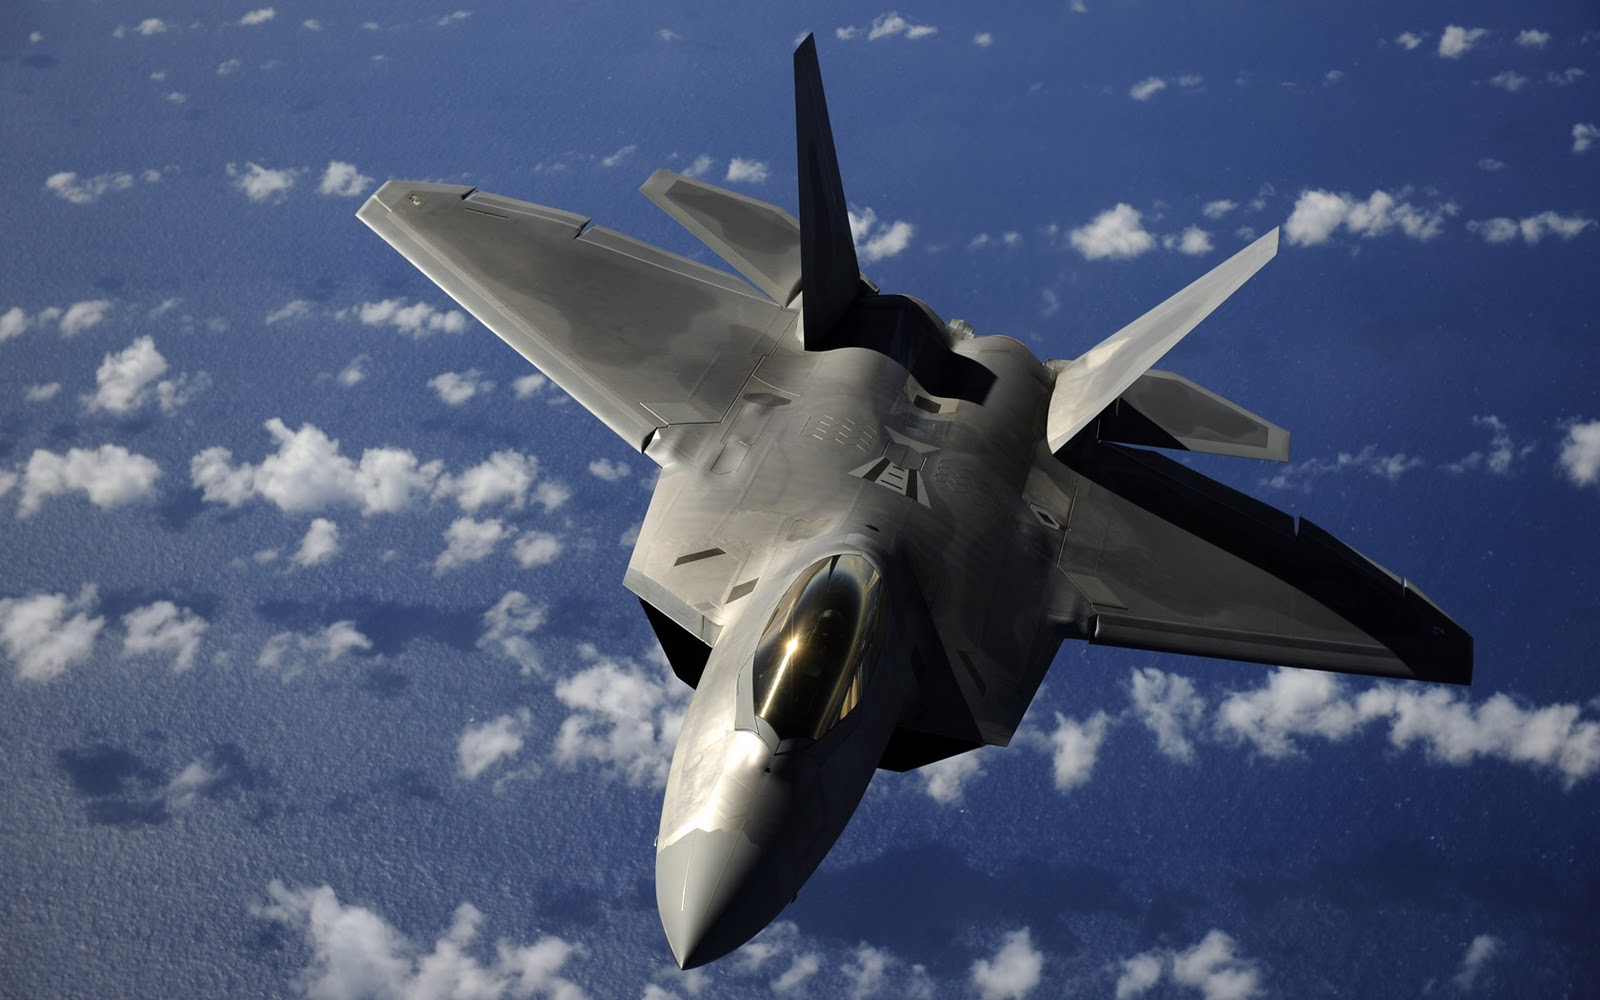 F22 Wallpaper 10567 Hd Wallpapers in Aircraft   Imagescicom 1600x1000